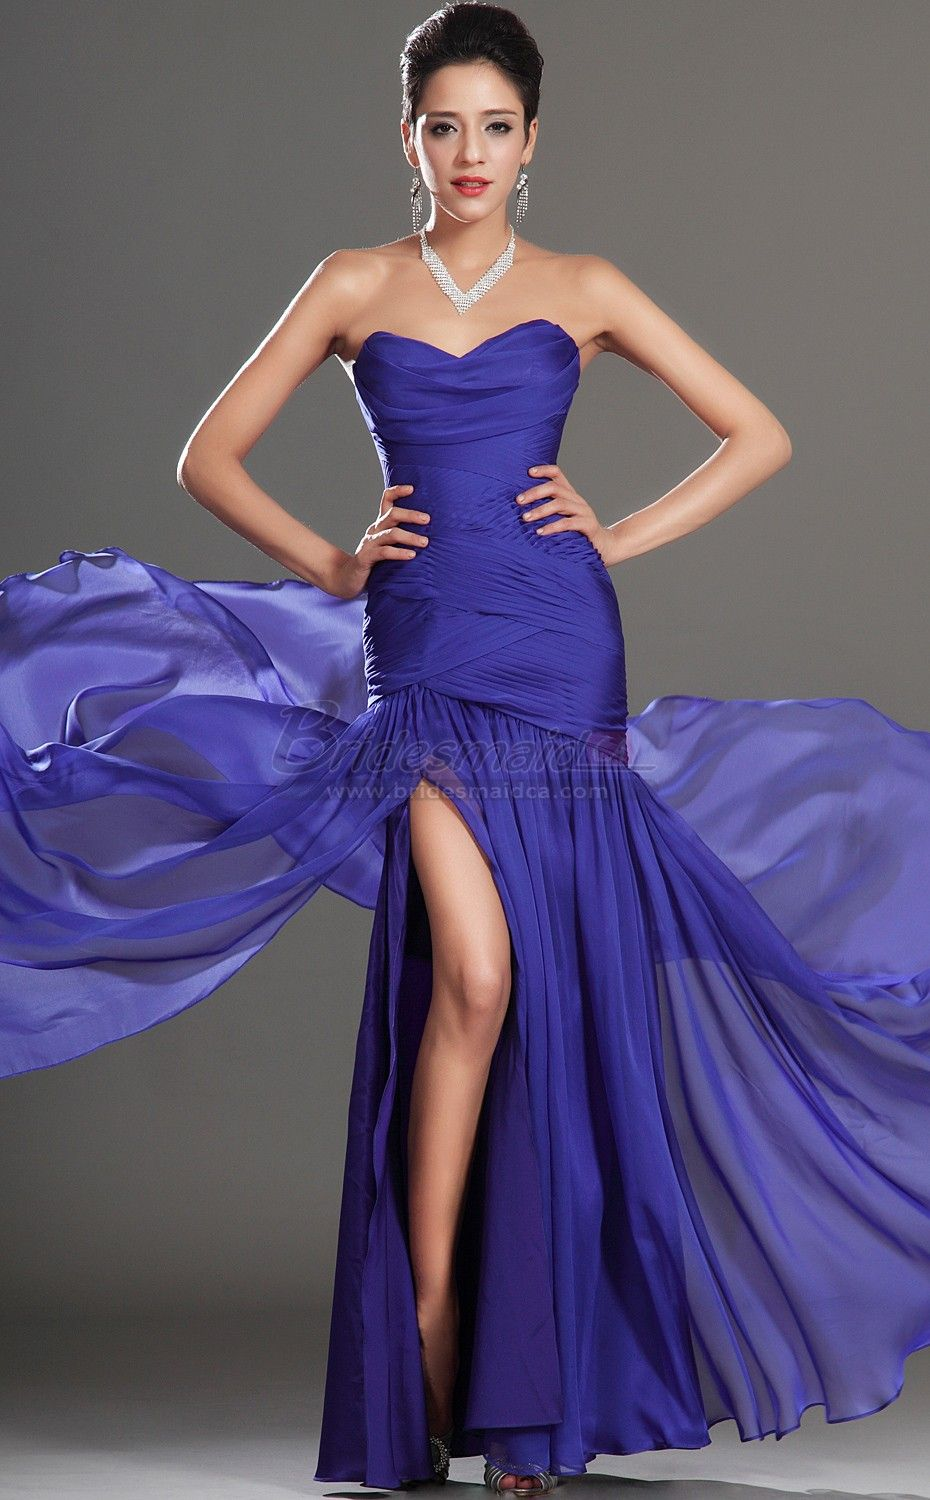 Long Sweetheart Neckline Chiffon Royal Blue Mermaid Bridesmaid Dress In BD CA521